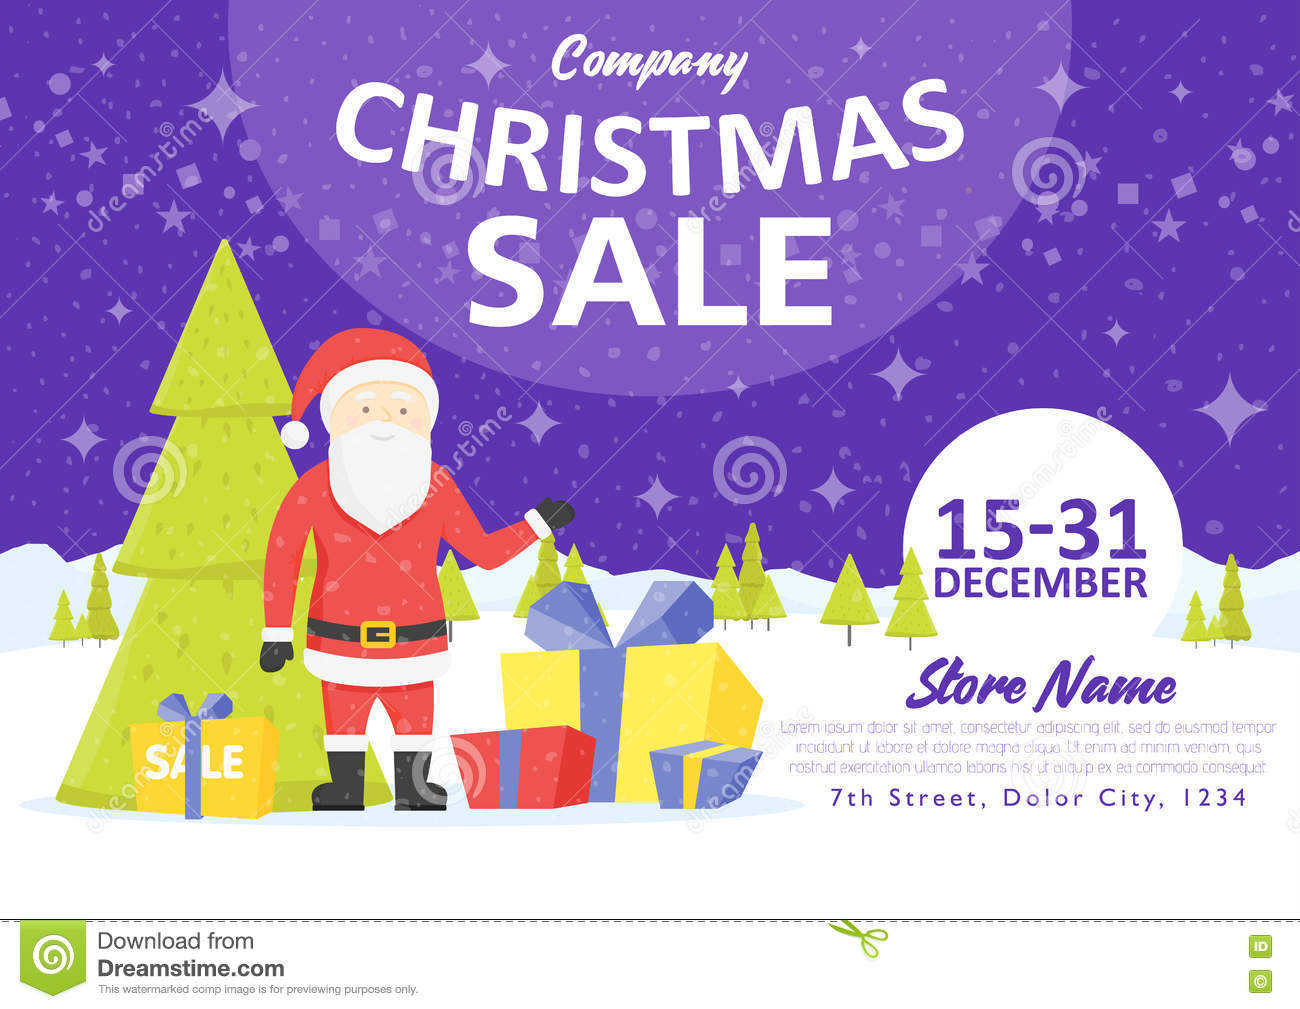 Sale Holiday Website Banner Templates  Christmas And New Year     Download Sale Holiday Website Banner Templates  Christmas And New Year  Illustrations For Social Media Banners